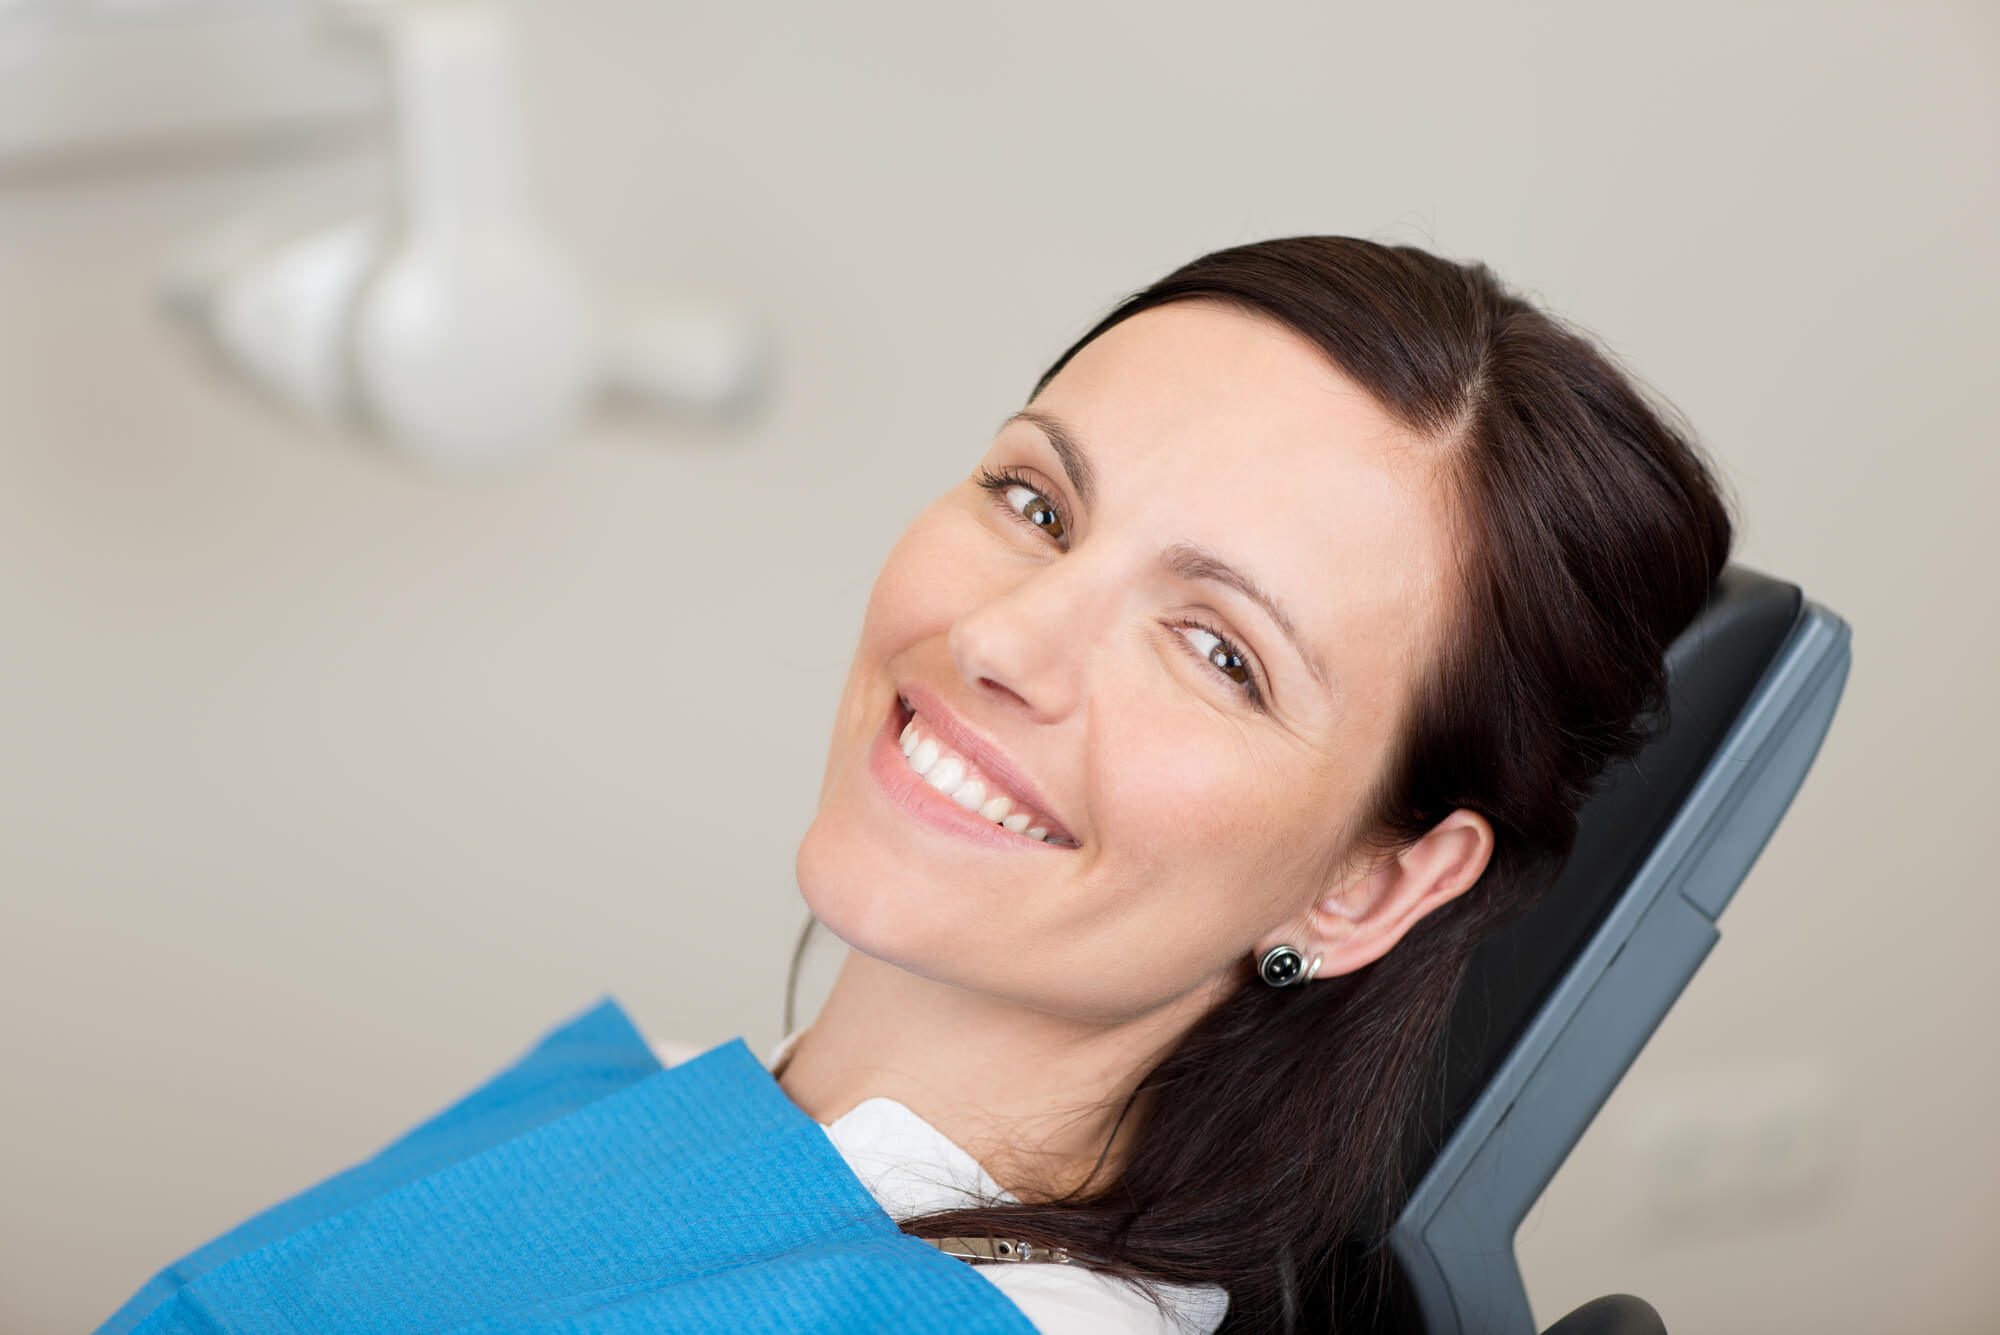 who offers emergency dentist Greenville sc?